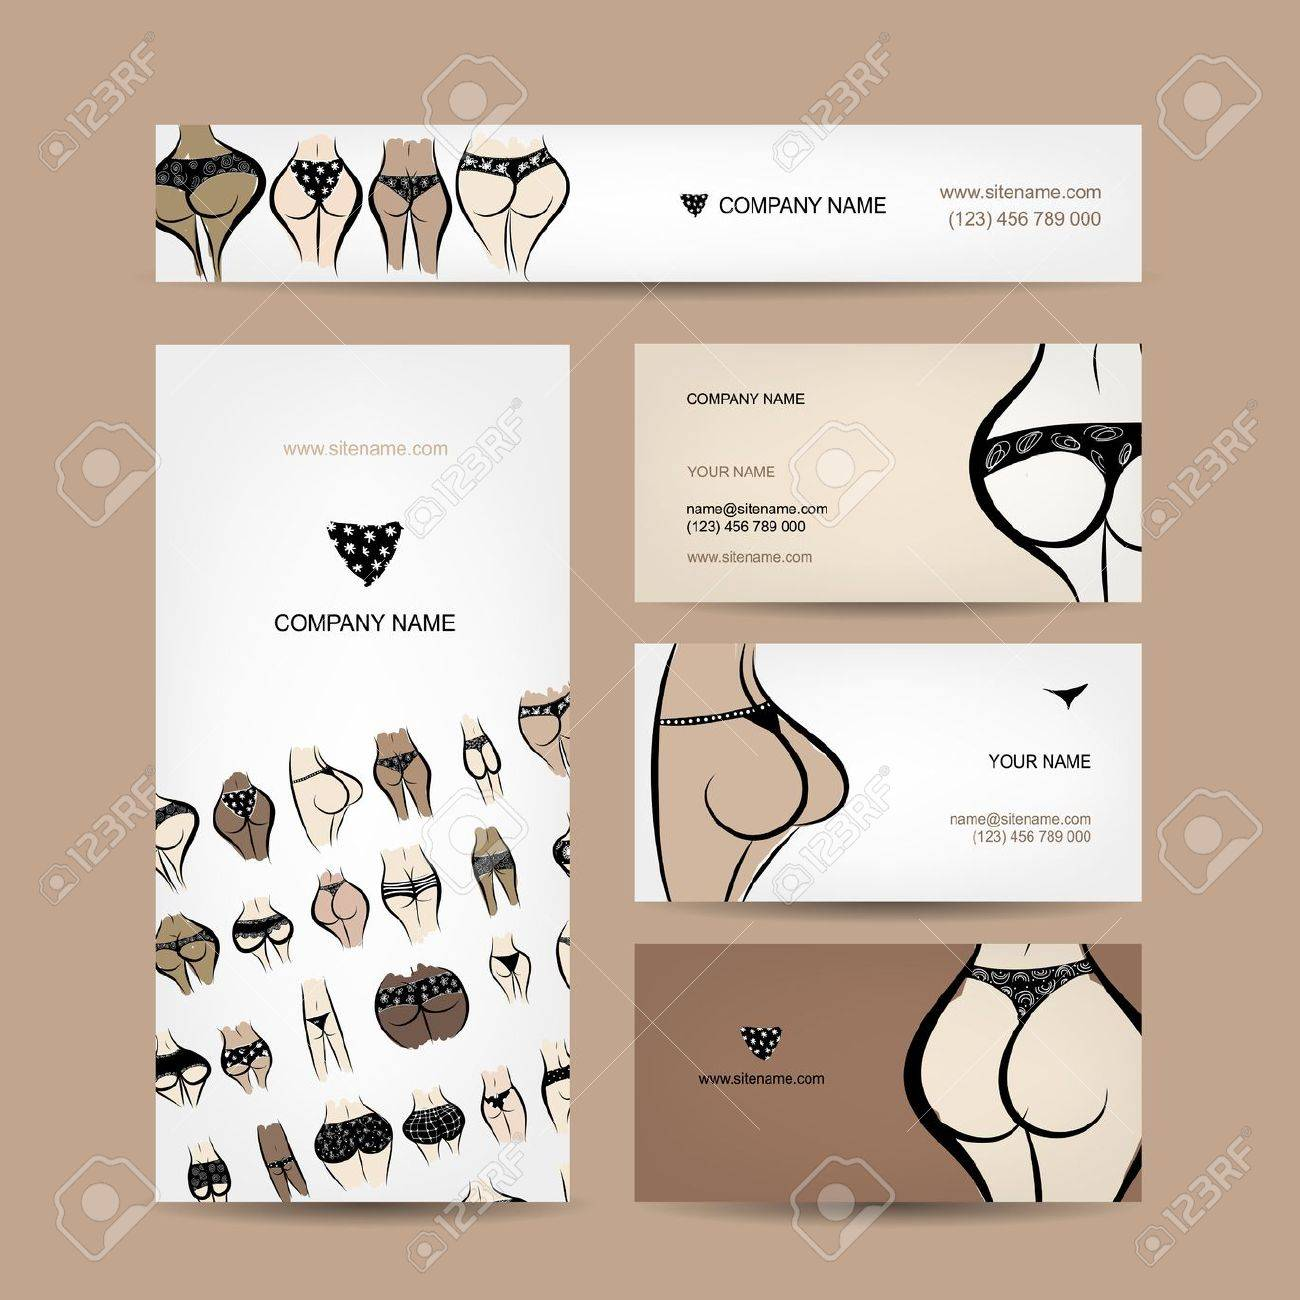 Bikini business cards